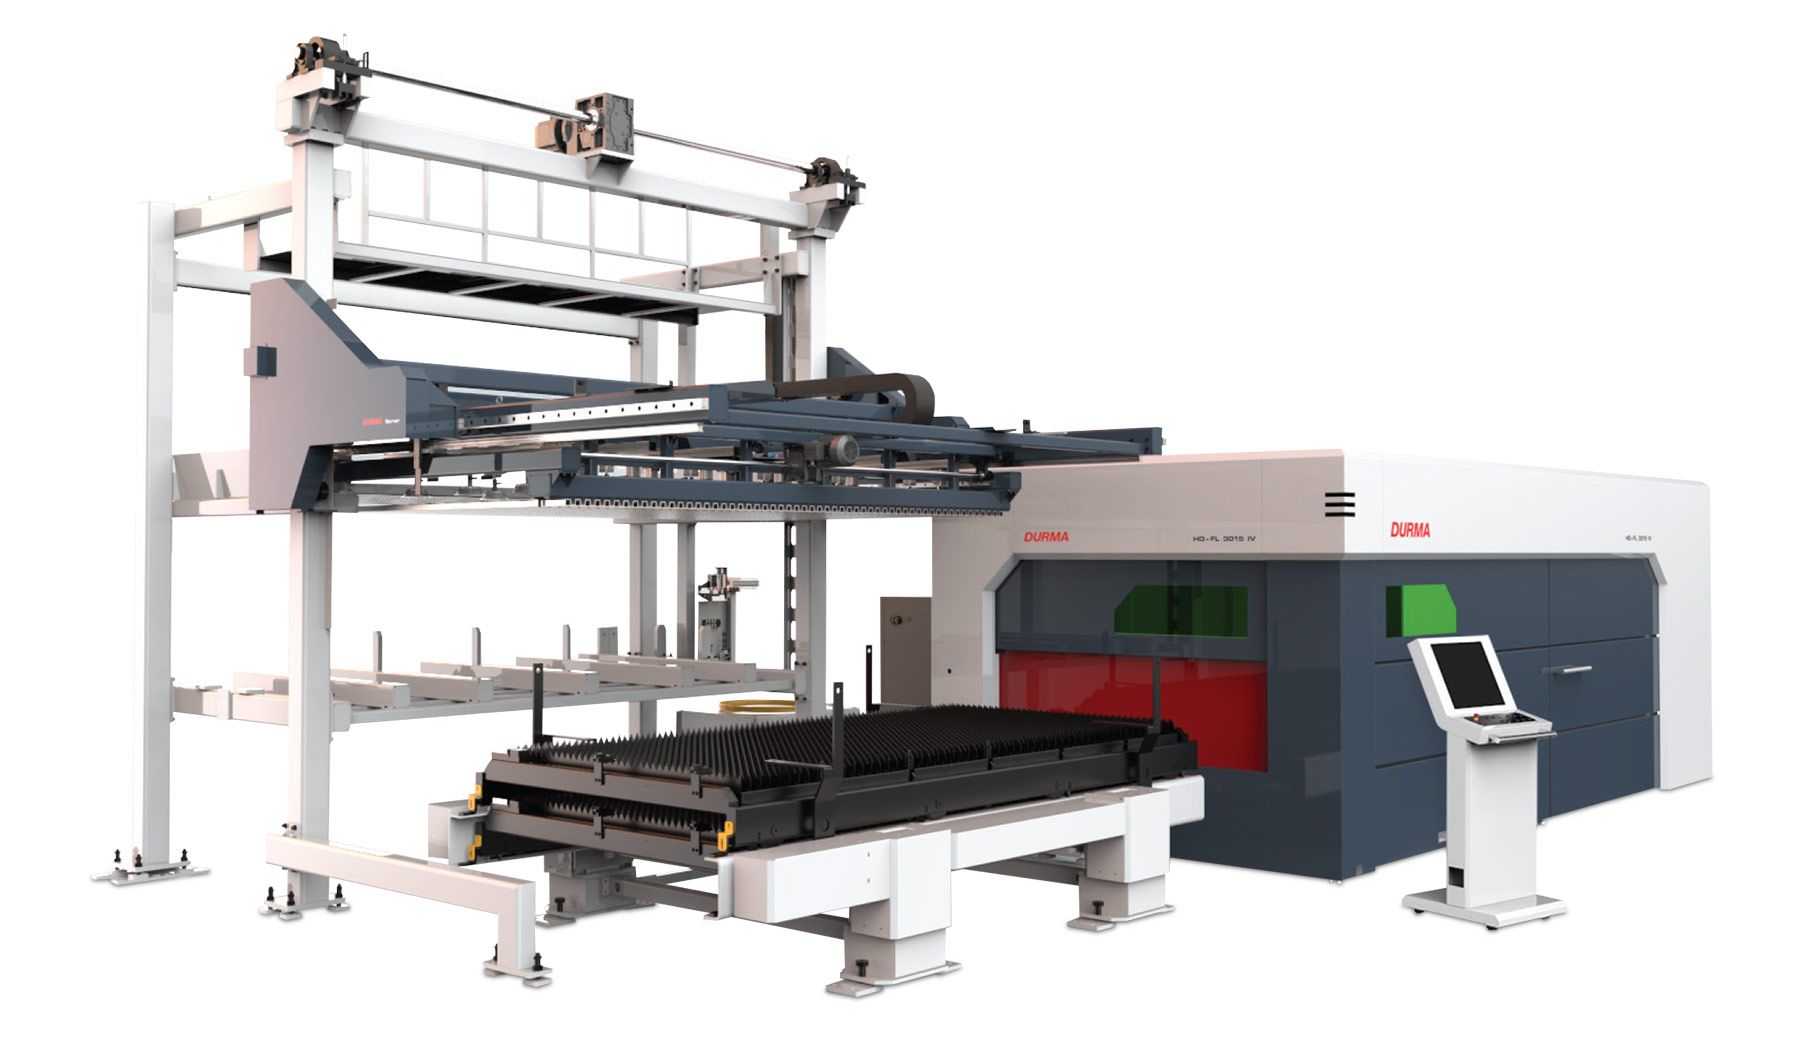 Durma Fiber Laser Cutting Machines Durma HD Series server - UK Supplier, distributor, Laser Bevel Head, 5 Axis Bevel, 5 Axis laser, Bevel, Bevel head, Laser head